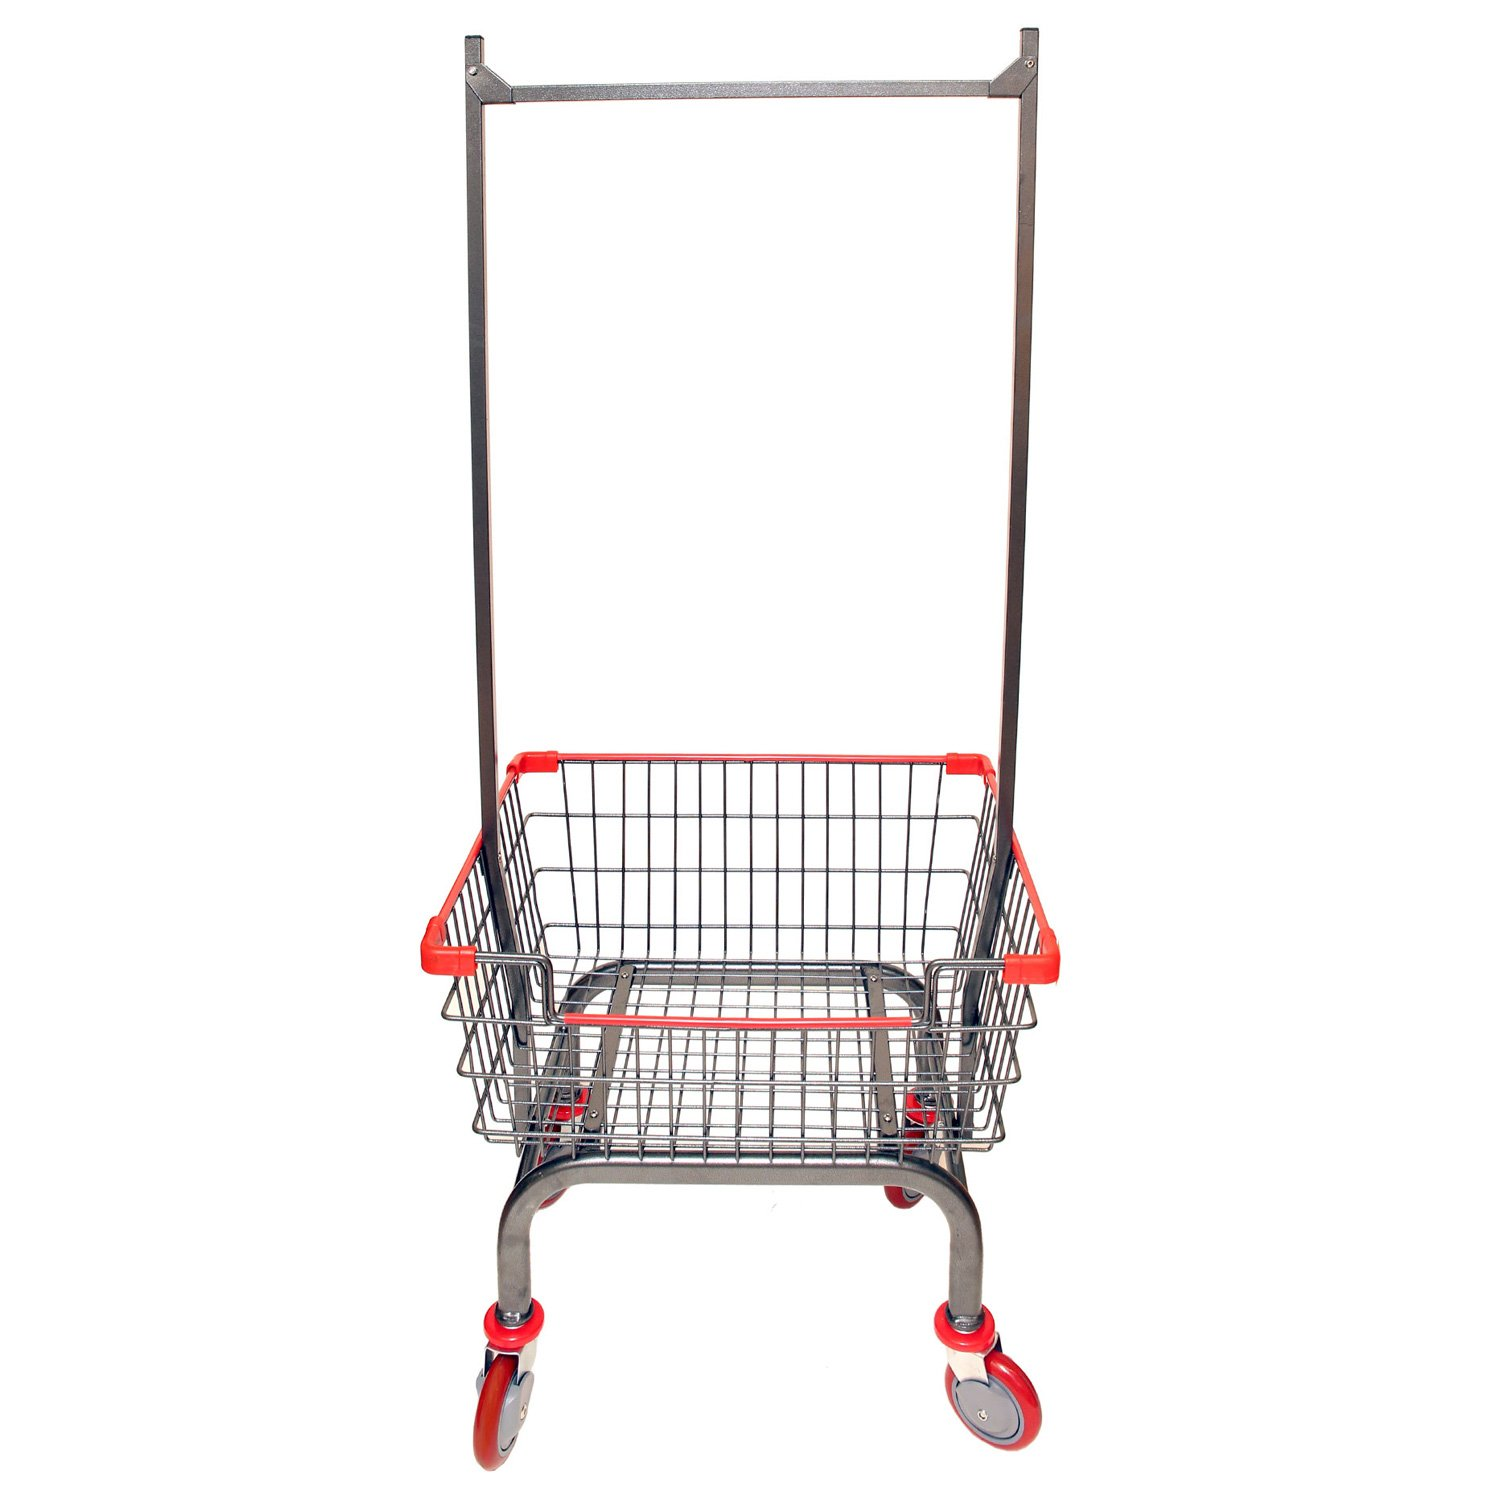 CART&SUPPLY Coin Laundry Cart, [Heavy Duty][Rolling Cart] Laundry Cart with Double Pole Rack [Charcoal Gray]